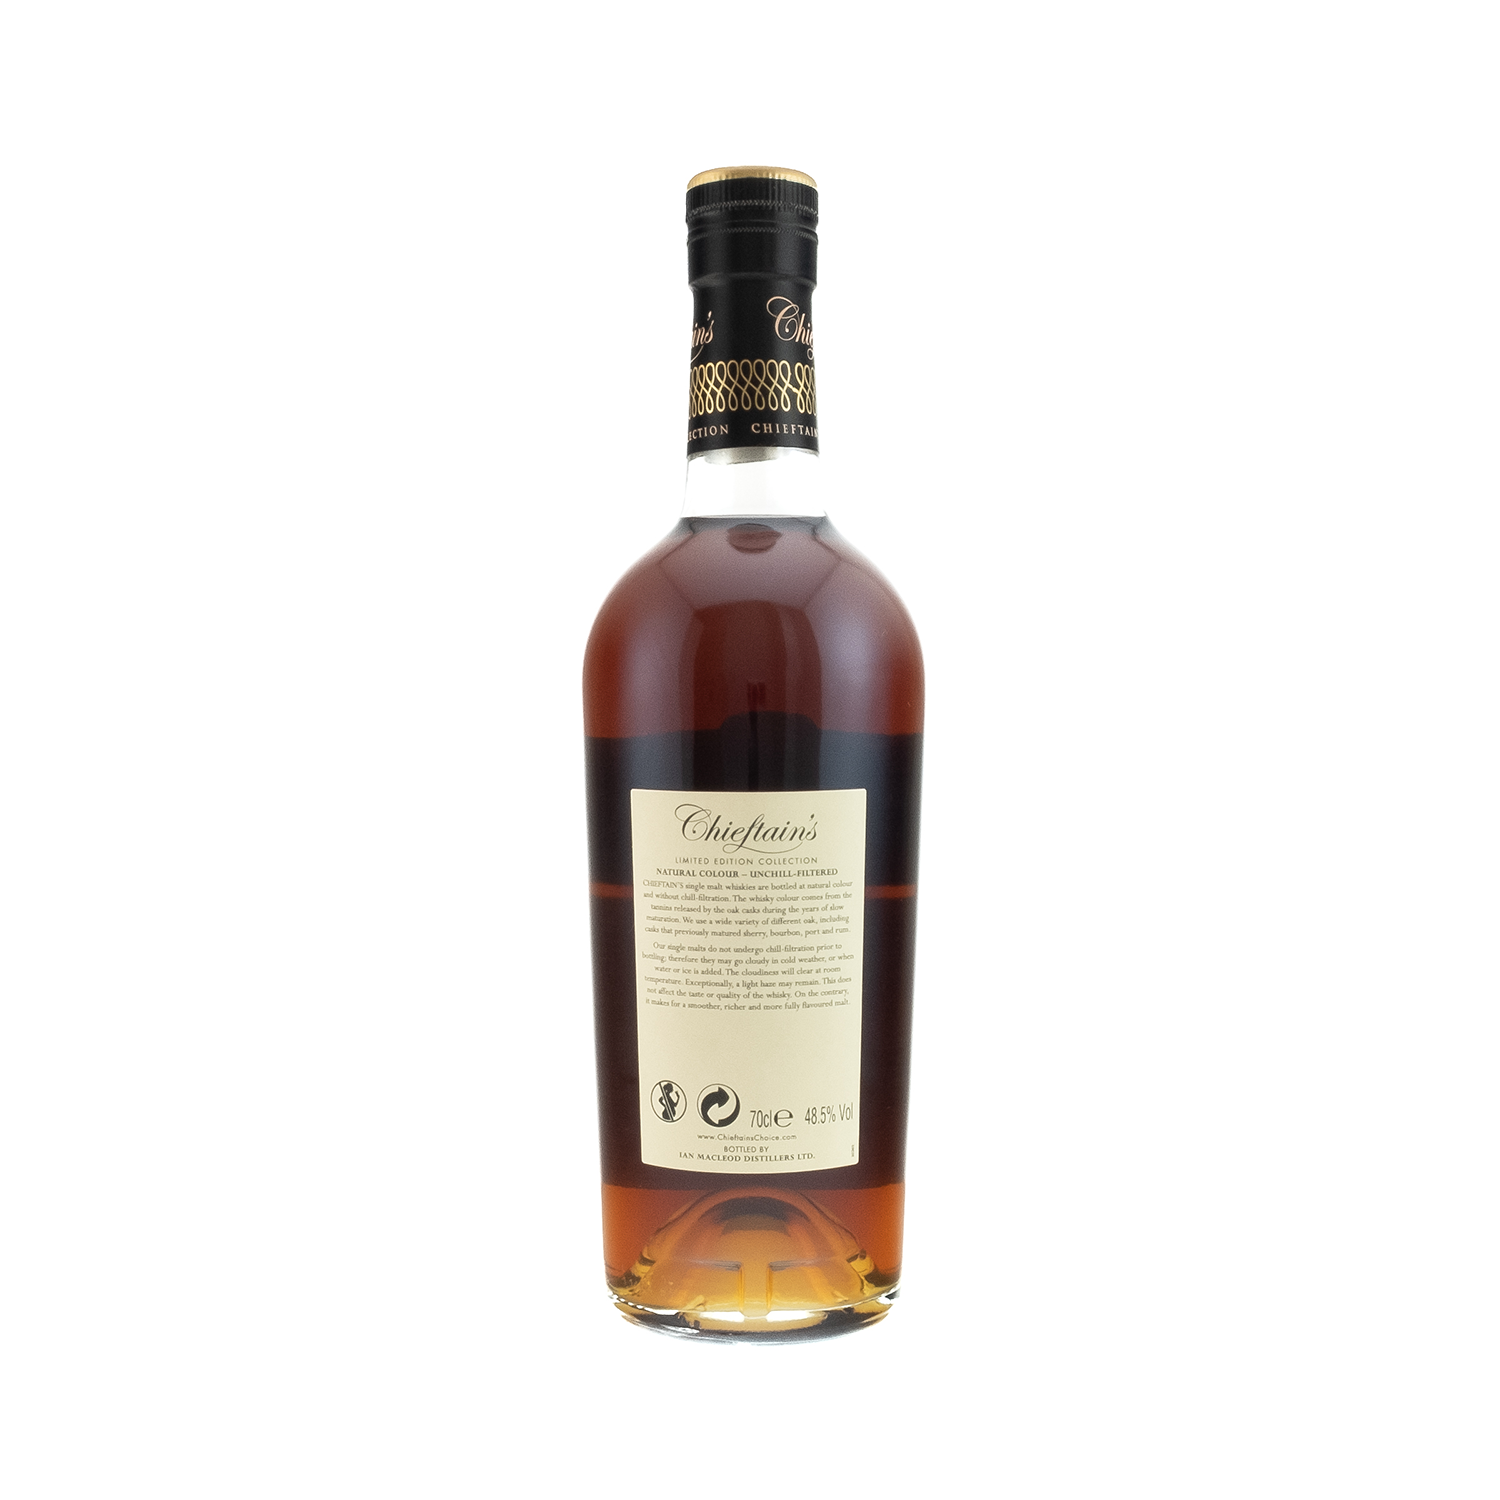 Whisky_Chieftains_Männerladen-Edition-2019_Speyside_001